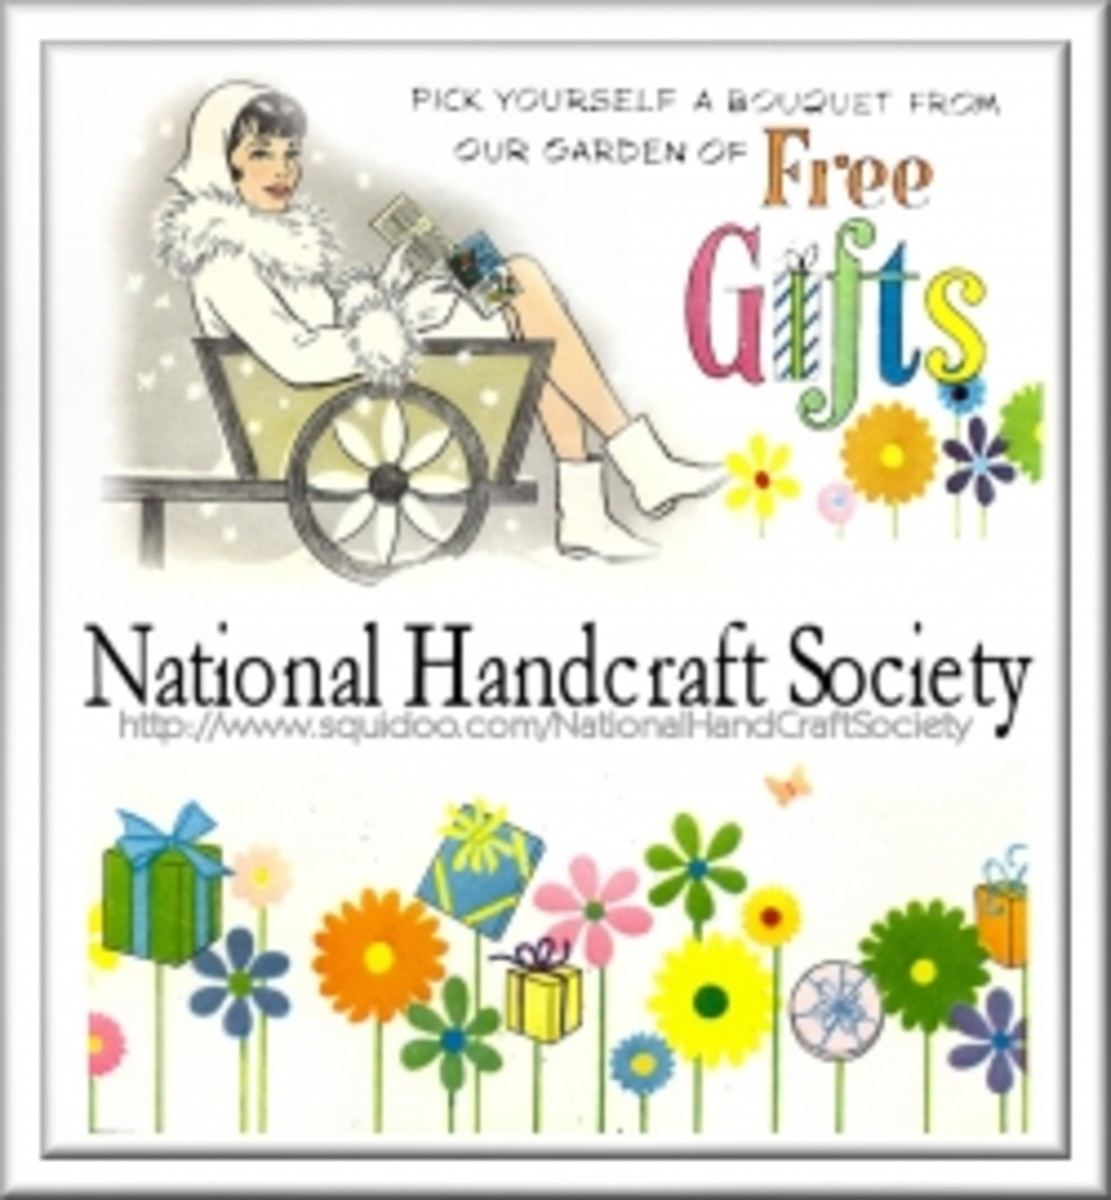 The National Handcraft Society